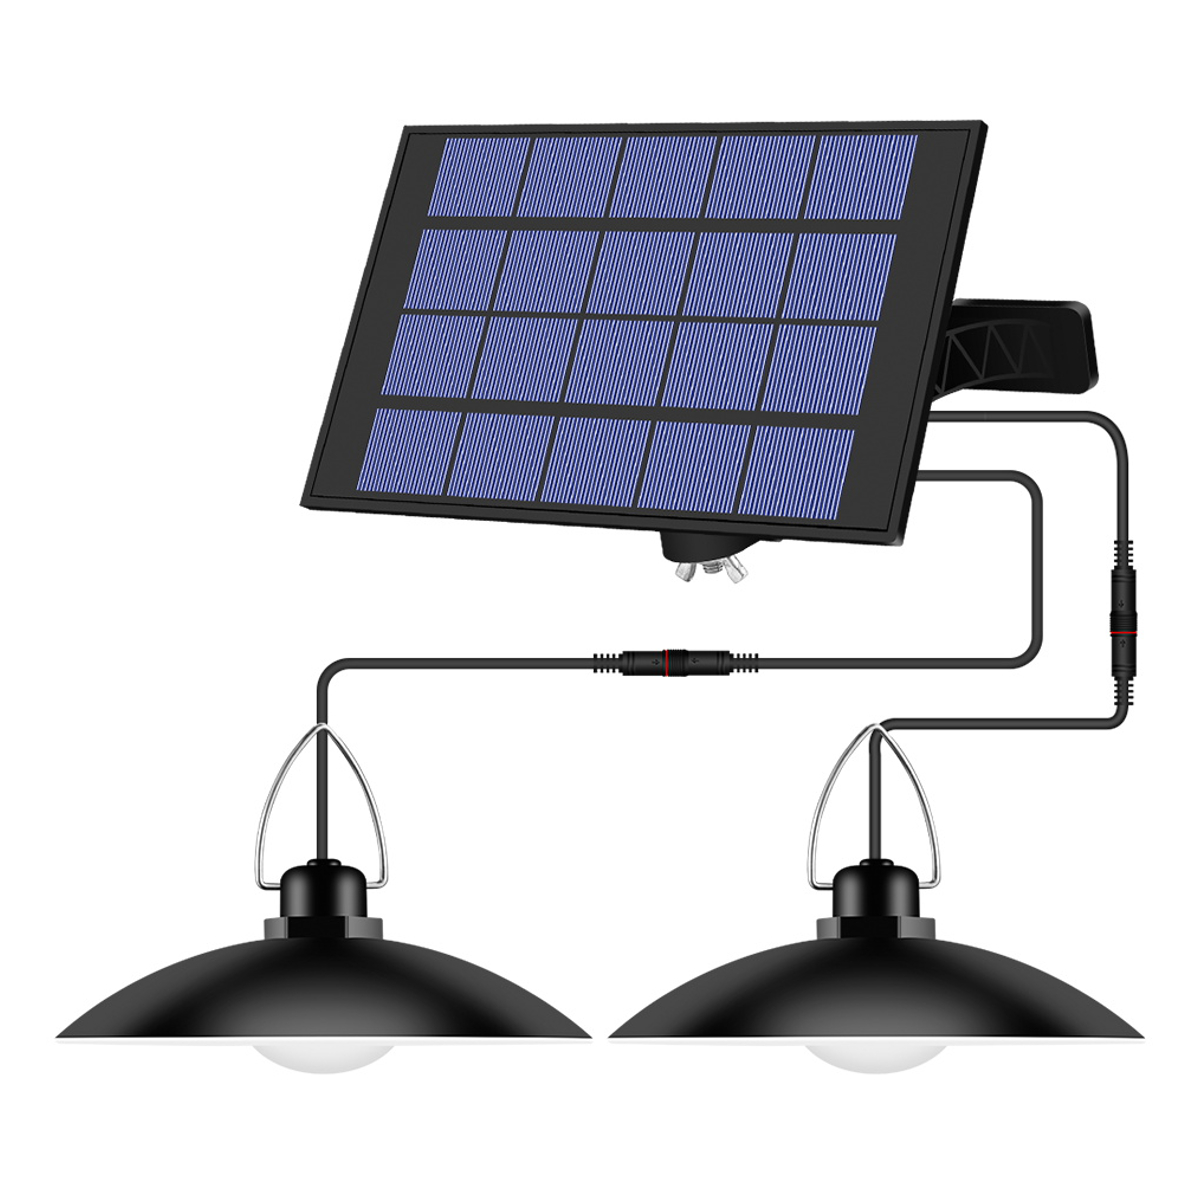 Double Head Solar Pendant Lights Waterproof Hanging Lamp for Outdoor Shed Barn